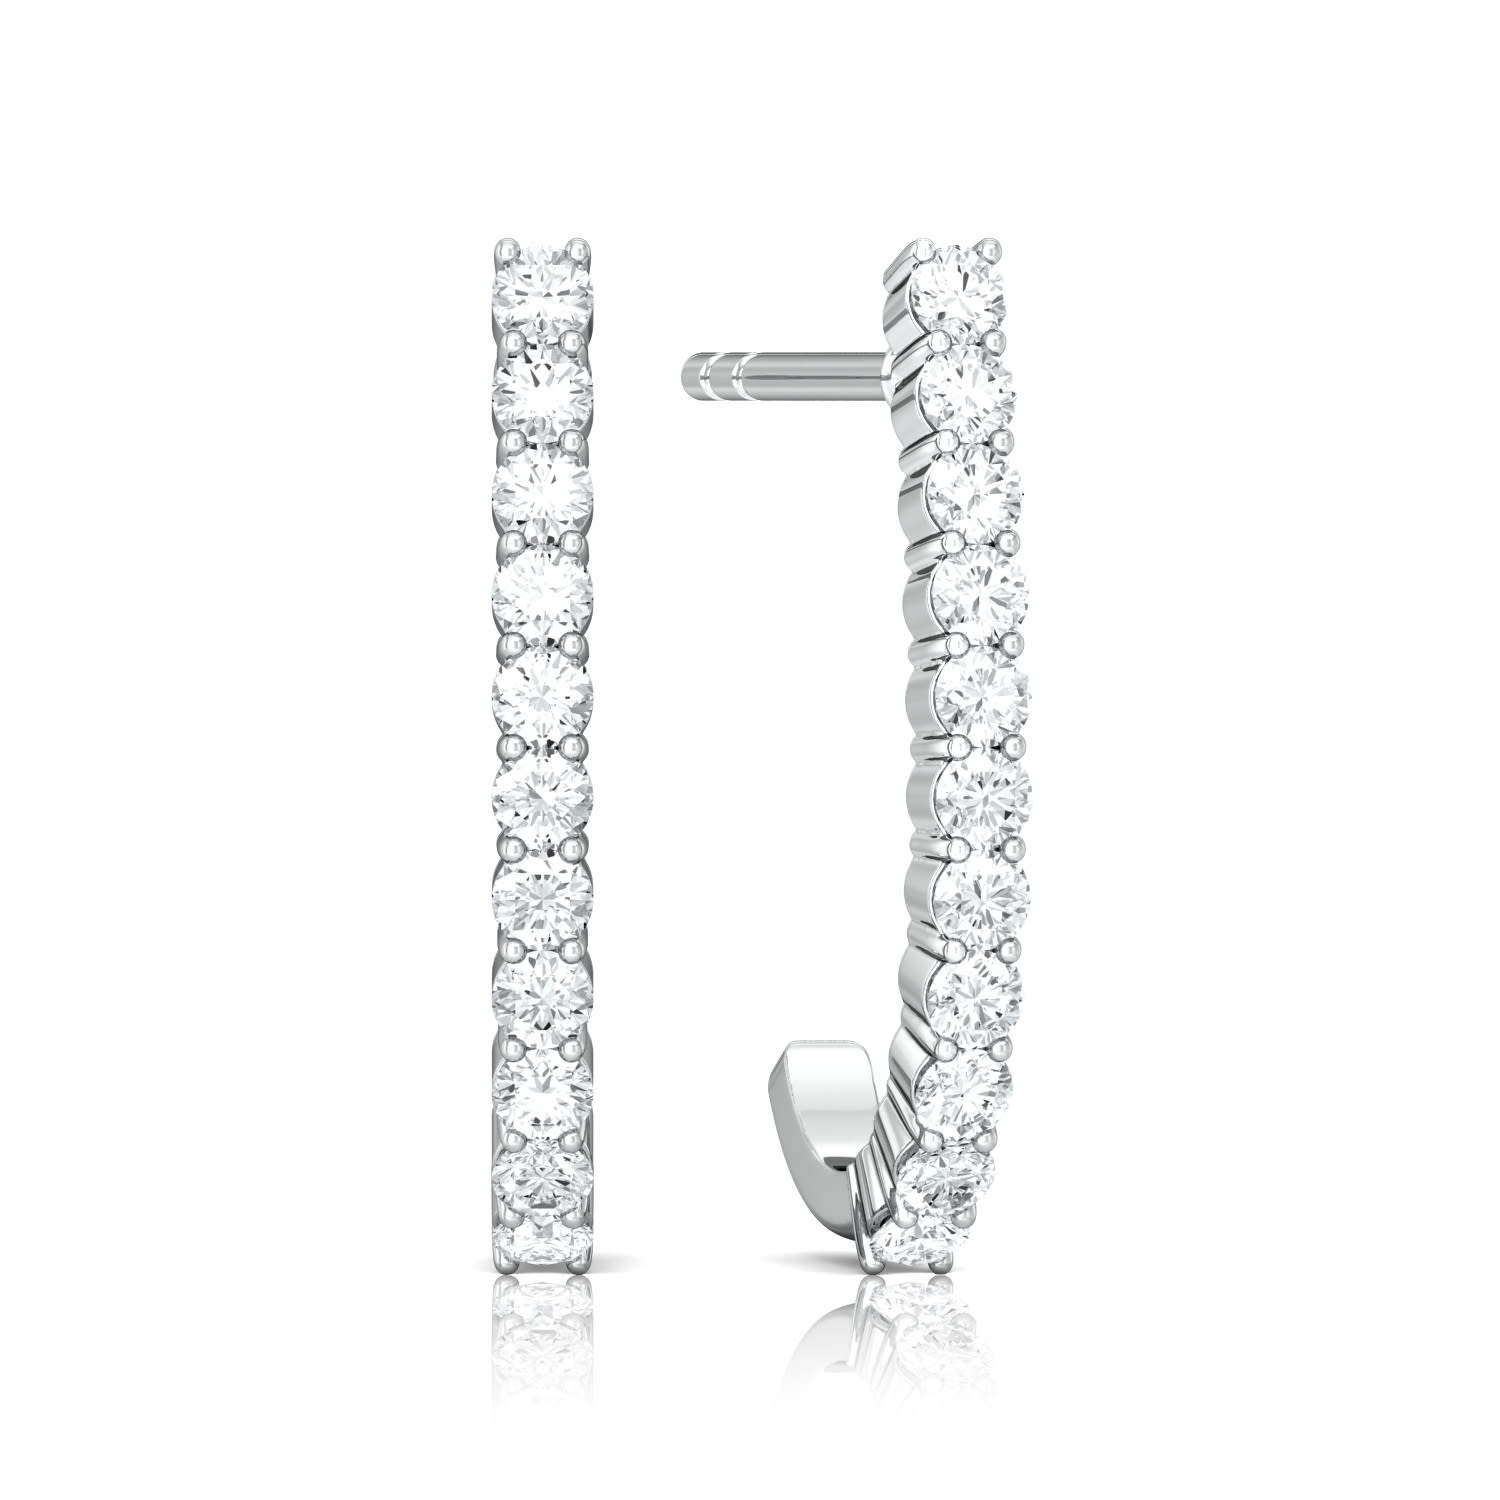 Line of Sparkle Diamond Earrings